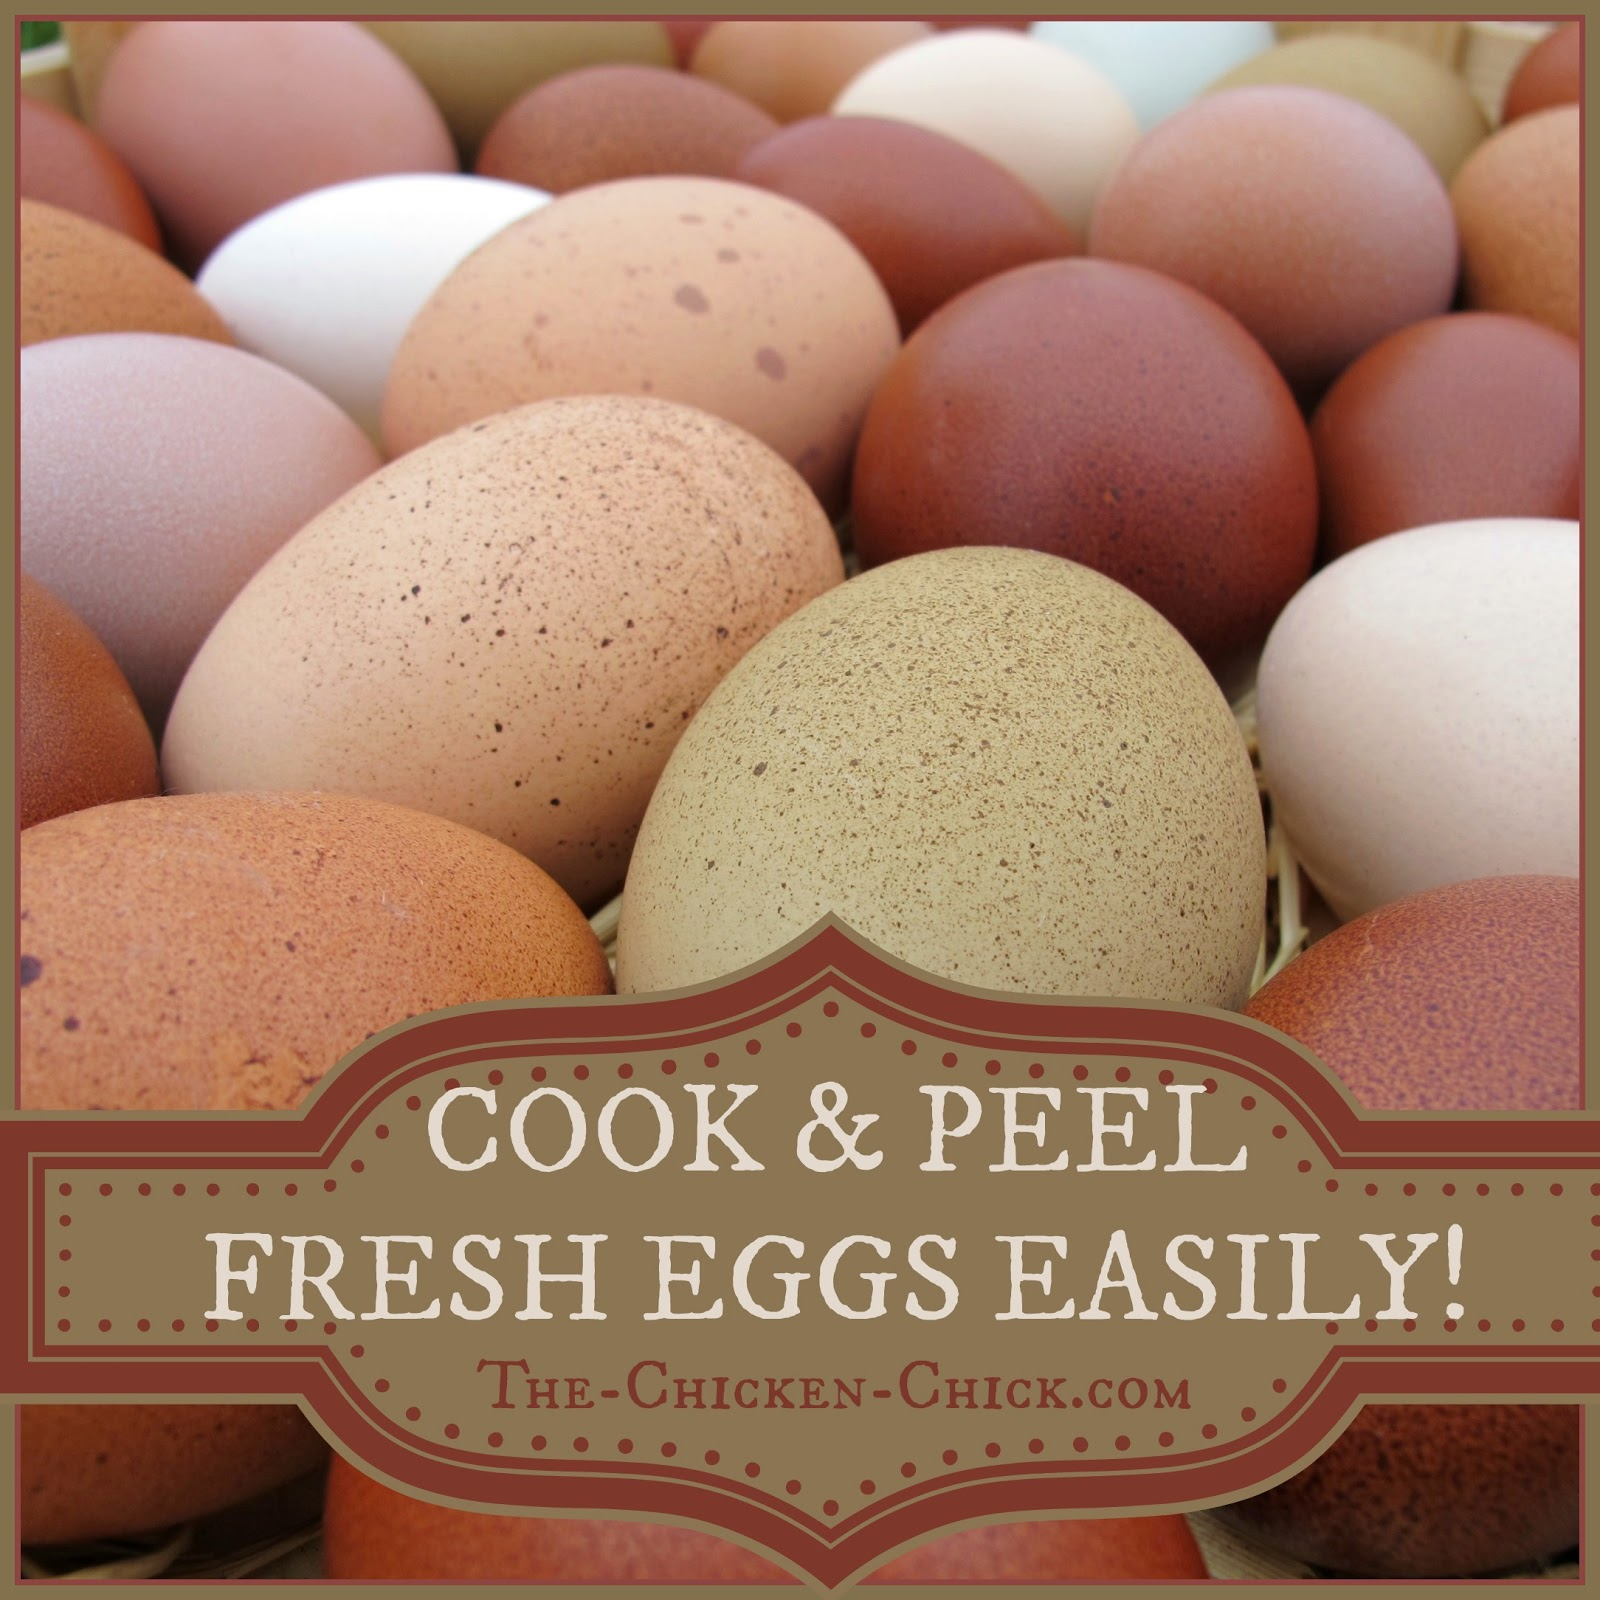 Ever Wonder Why Storebought Eggs Are So Easy To Peel? Simply Put